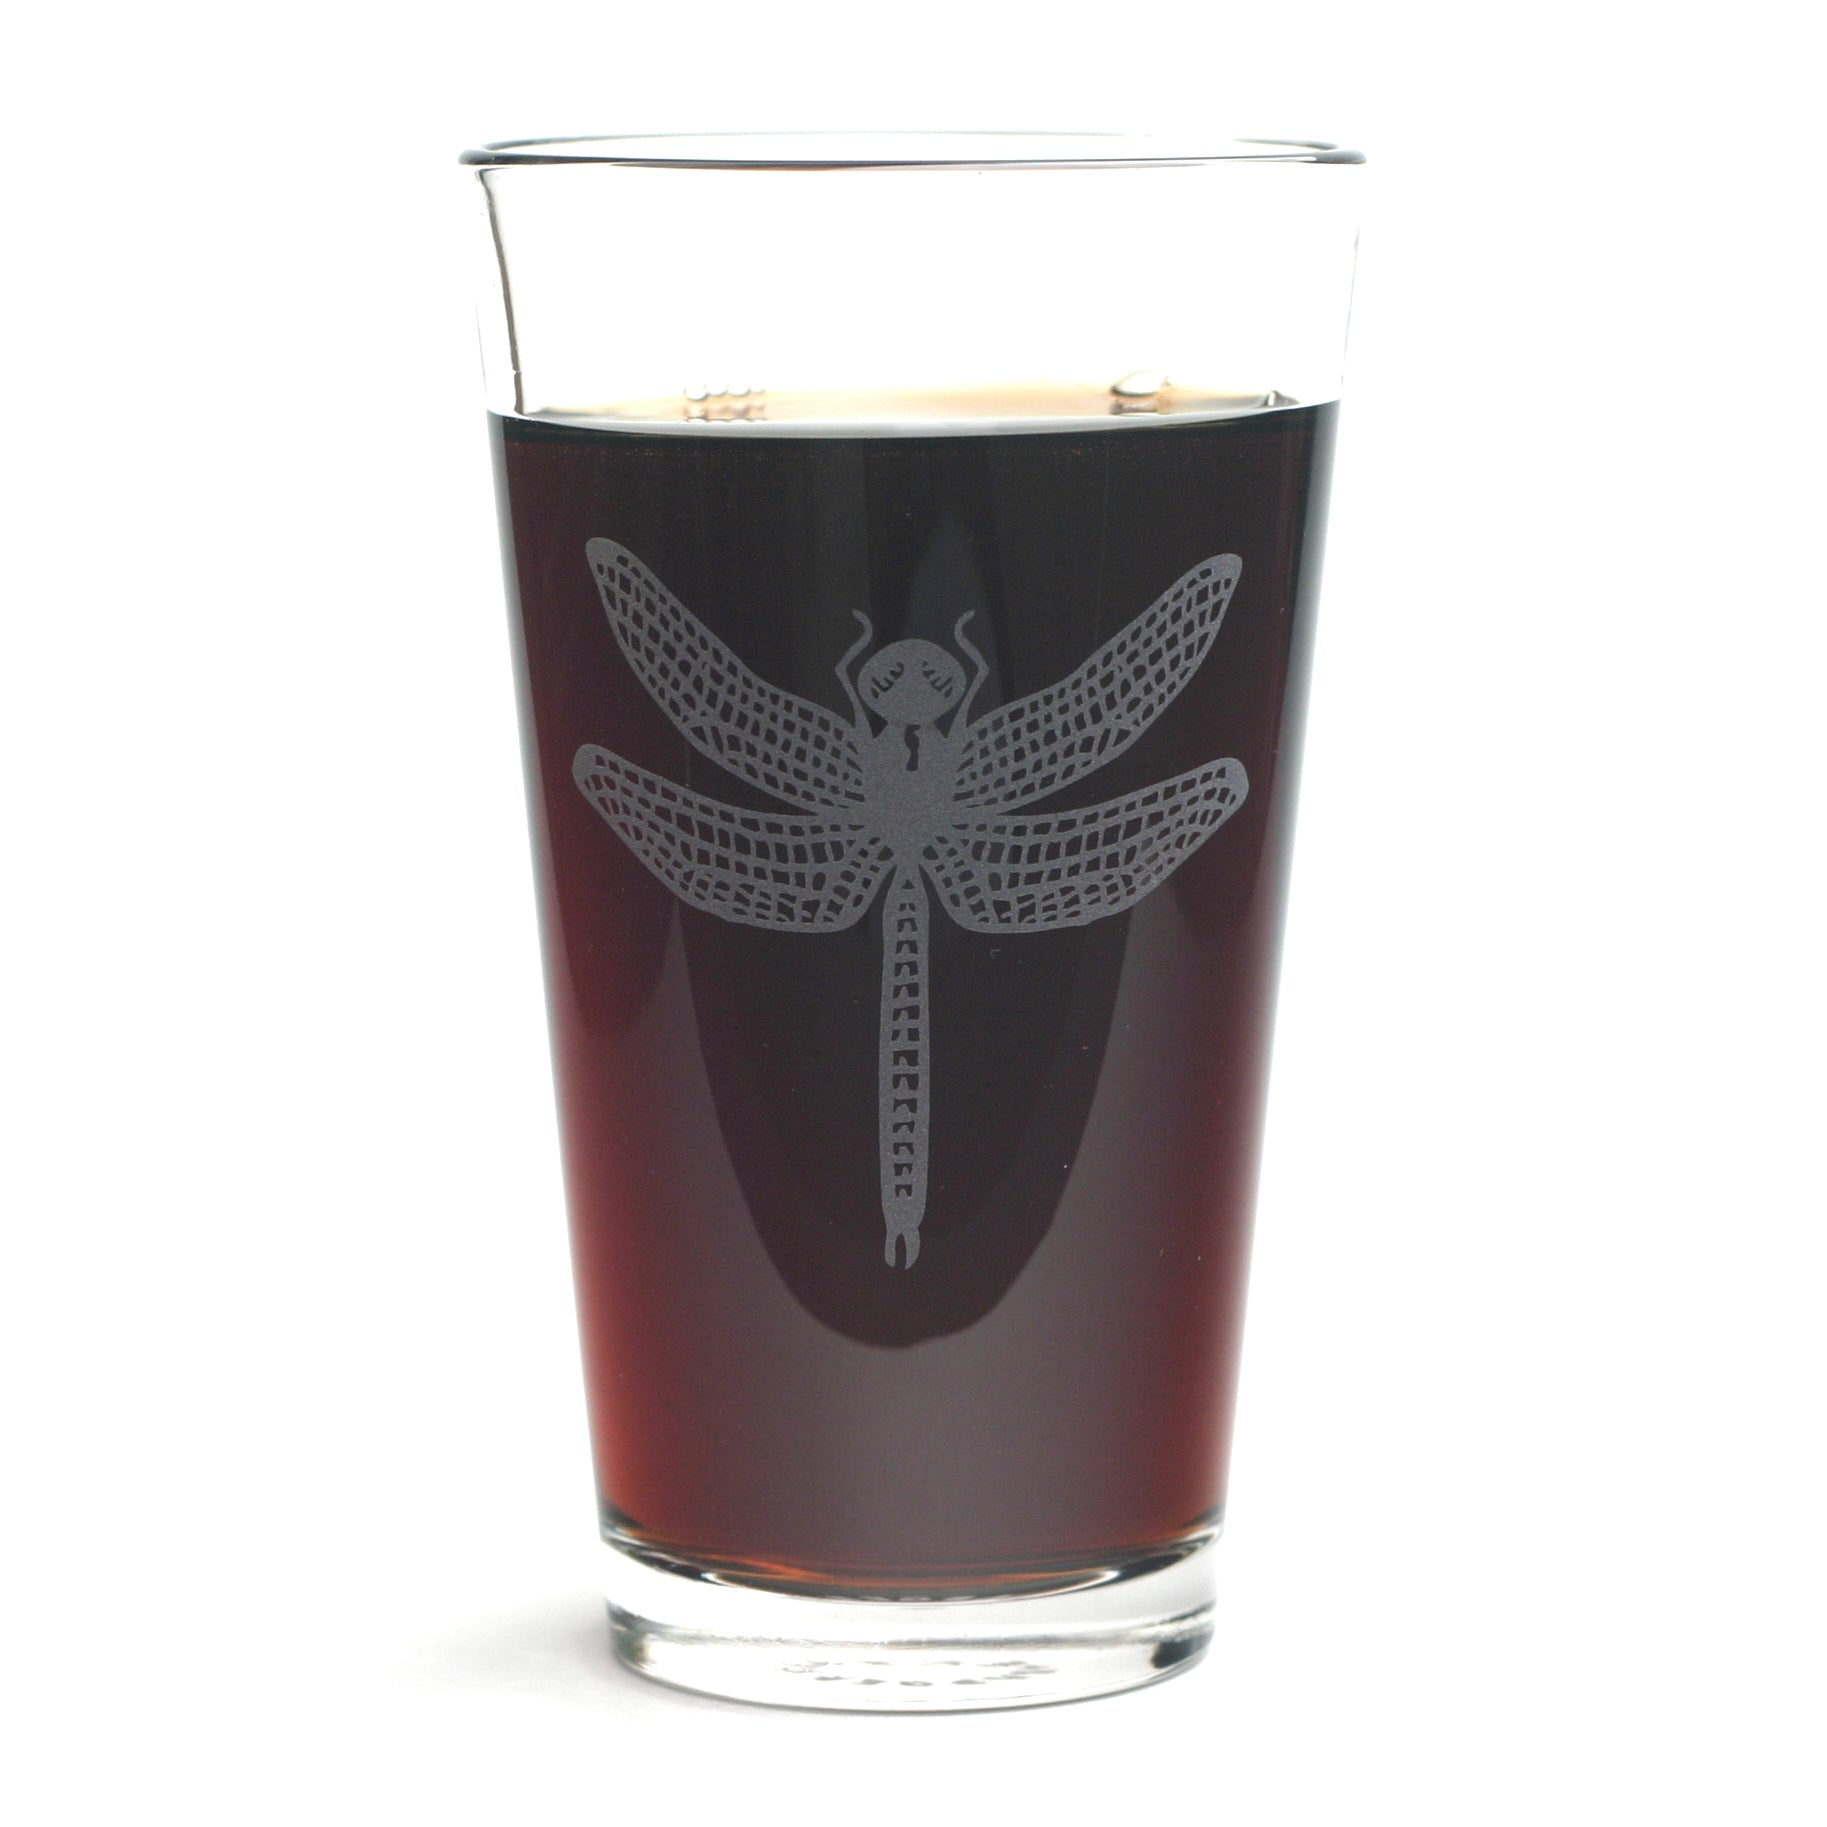 Dragonfly pint glass by Bread and Badger